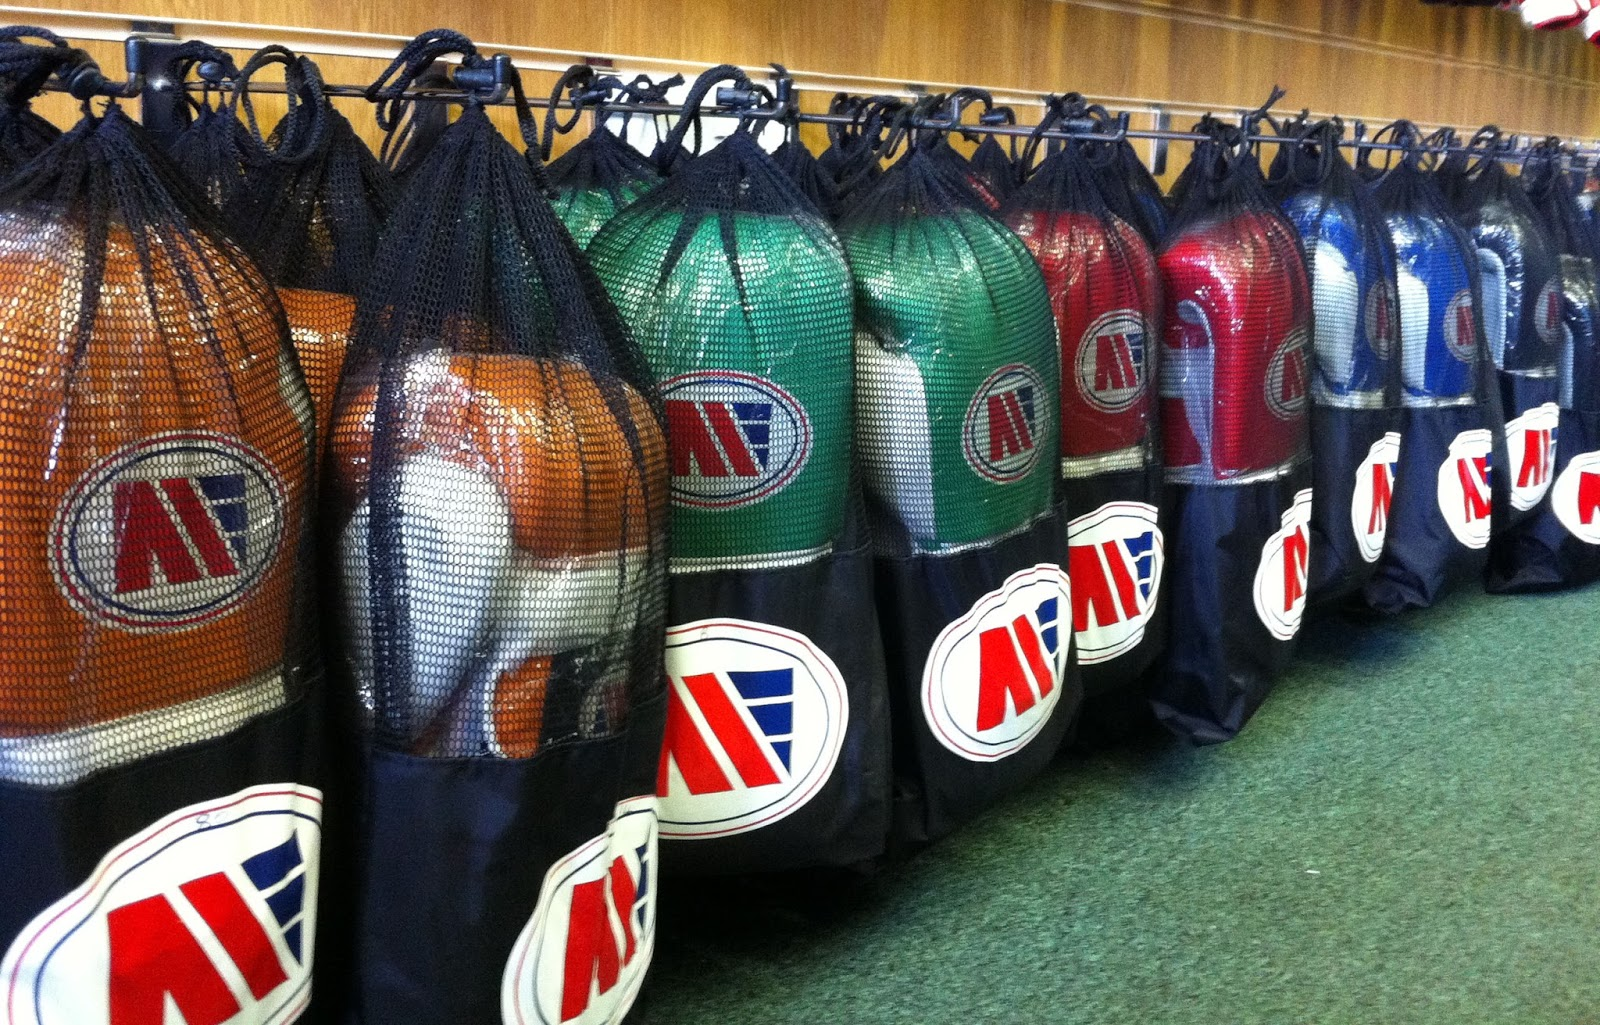 Shiv Naresh Teens Boxing Gloves 12oz: BILLERICAY AND WICKFORD BOXING CLUB: Main Event Boxing